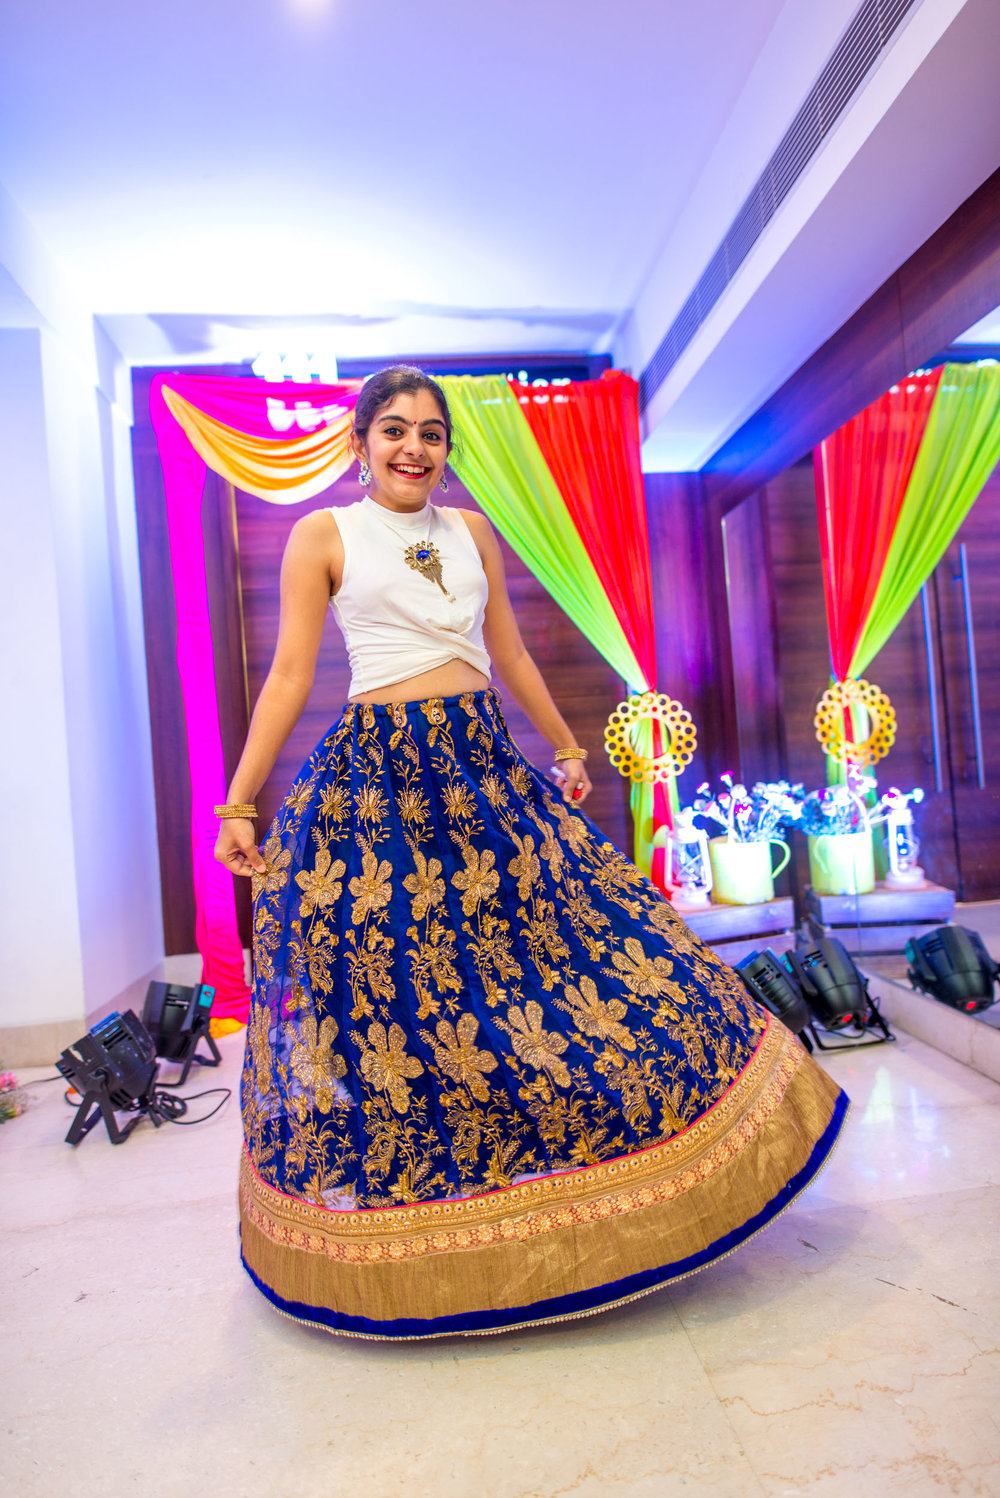 cover-hyderabad-wedding-1-2.jpg